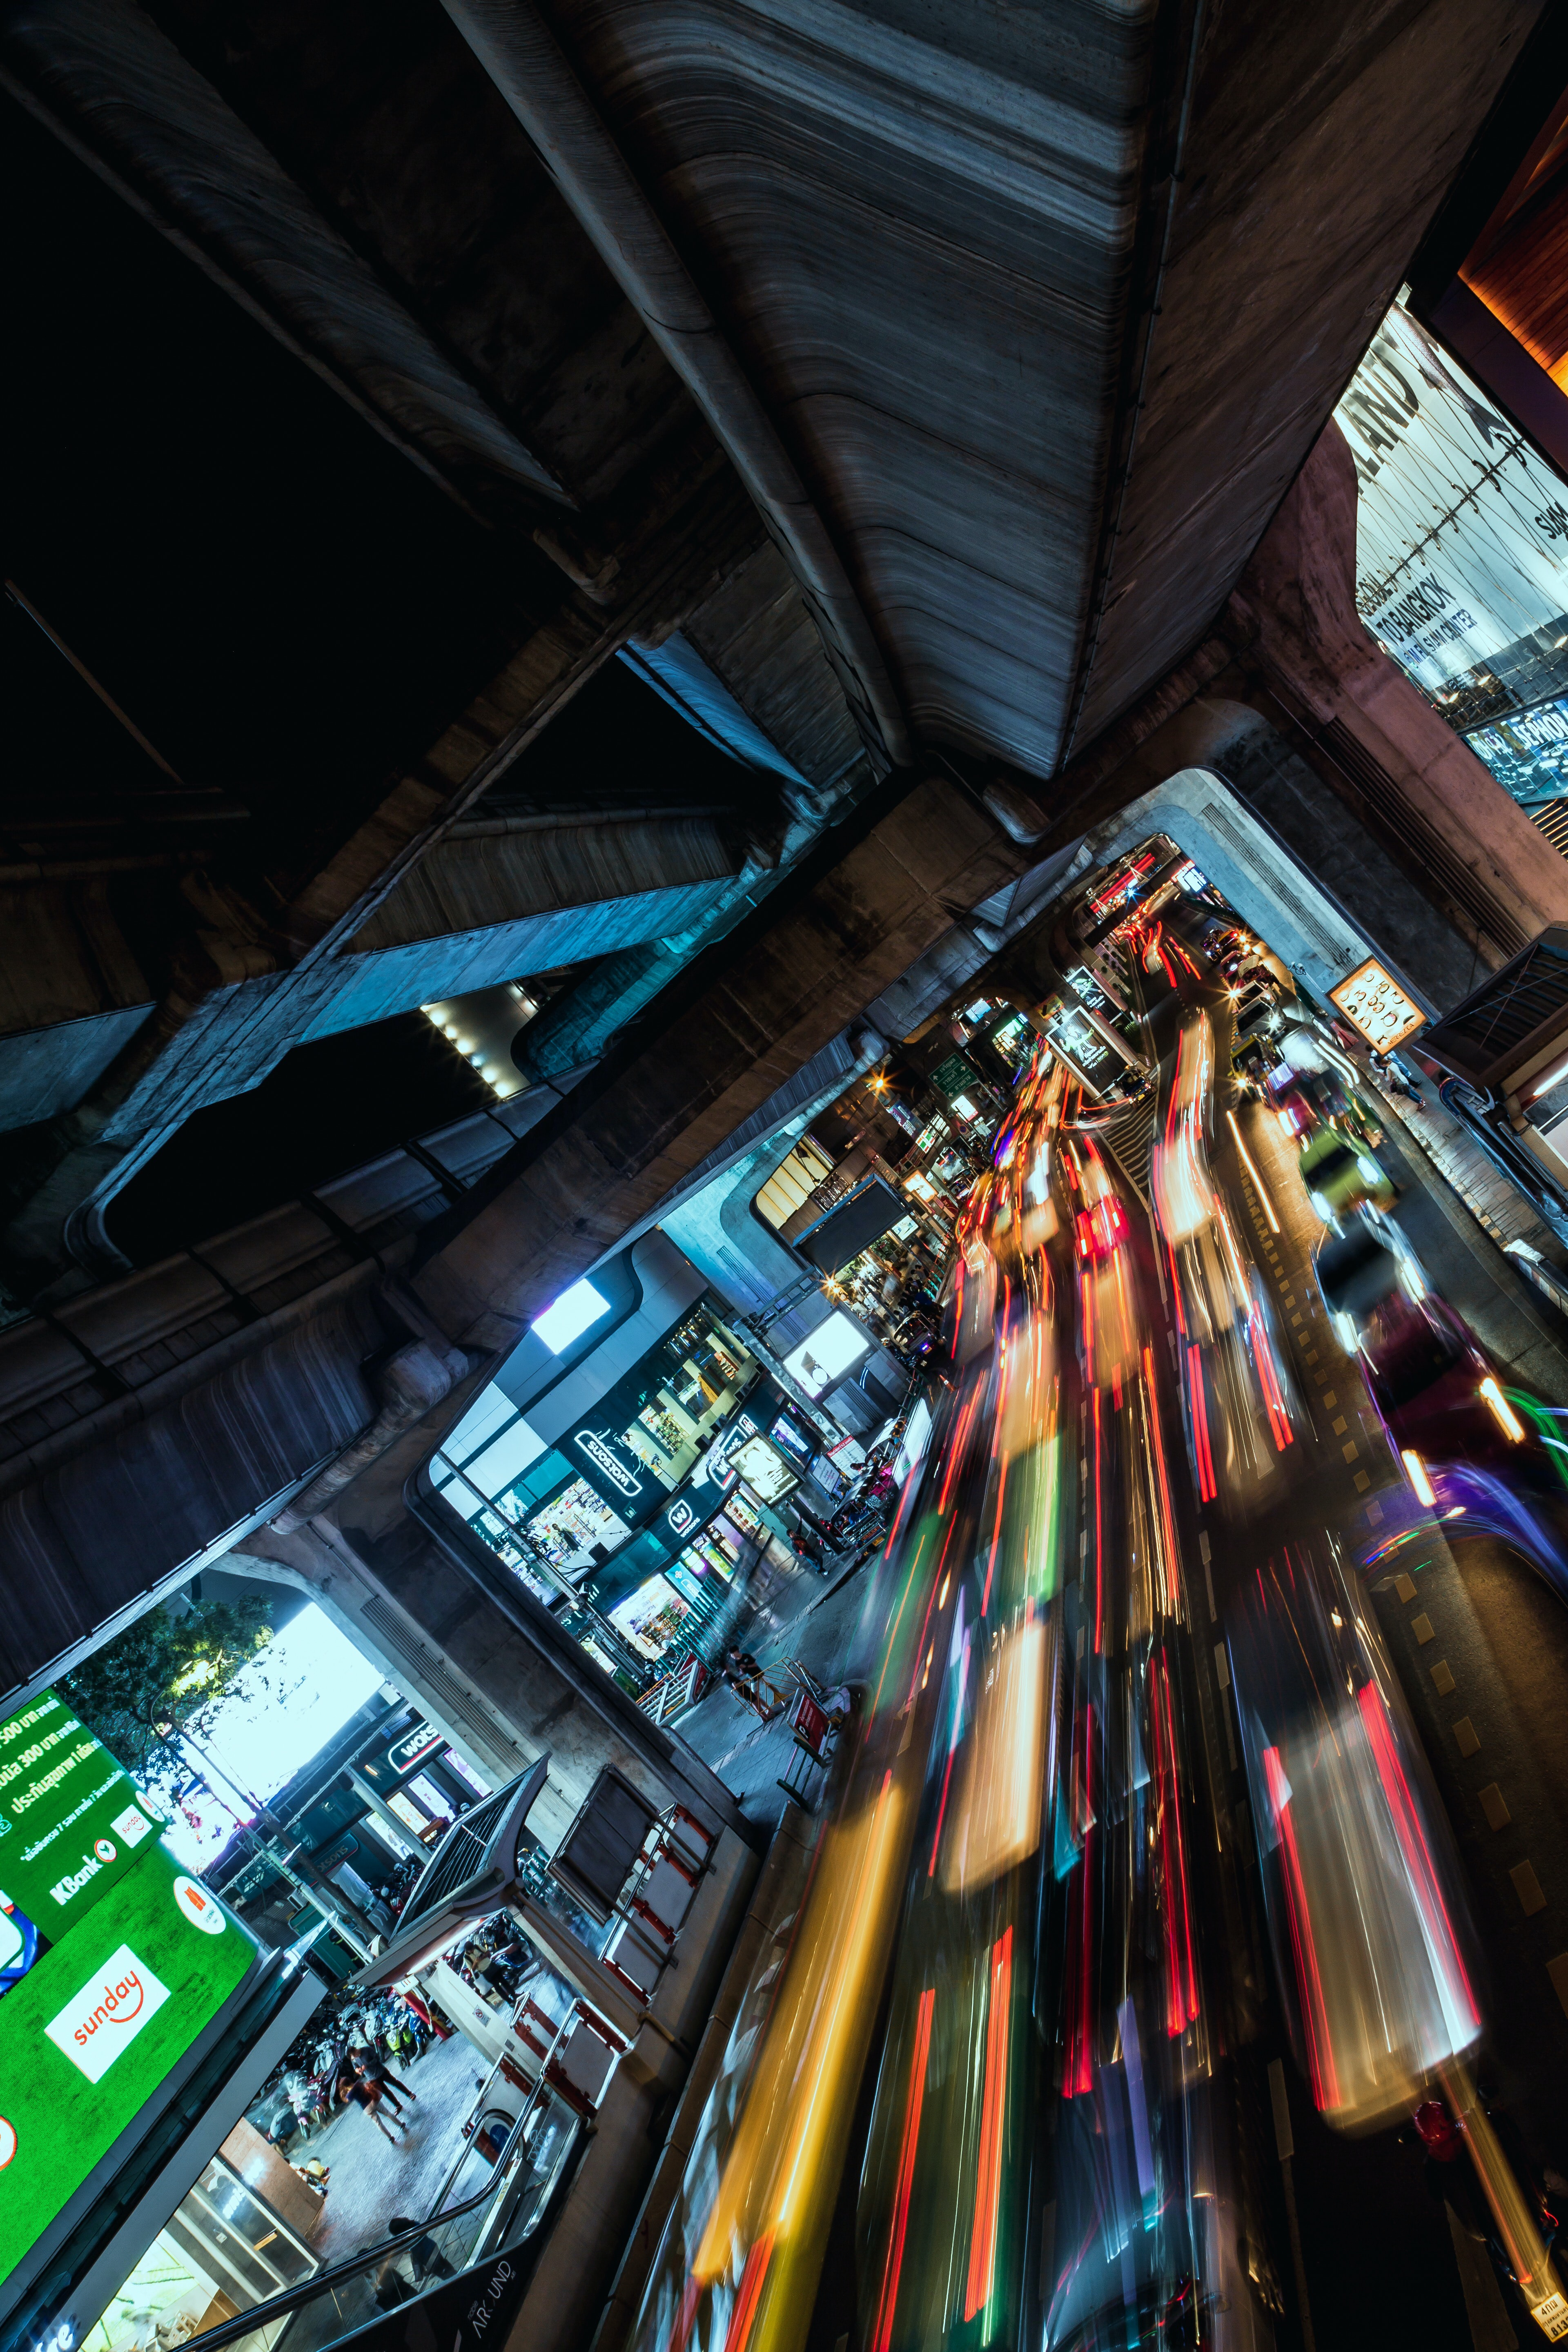 long exposure photography of cars on street